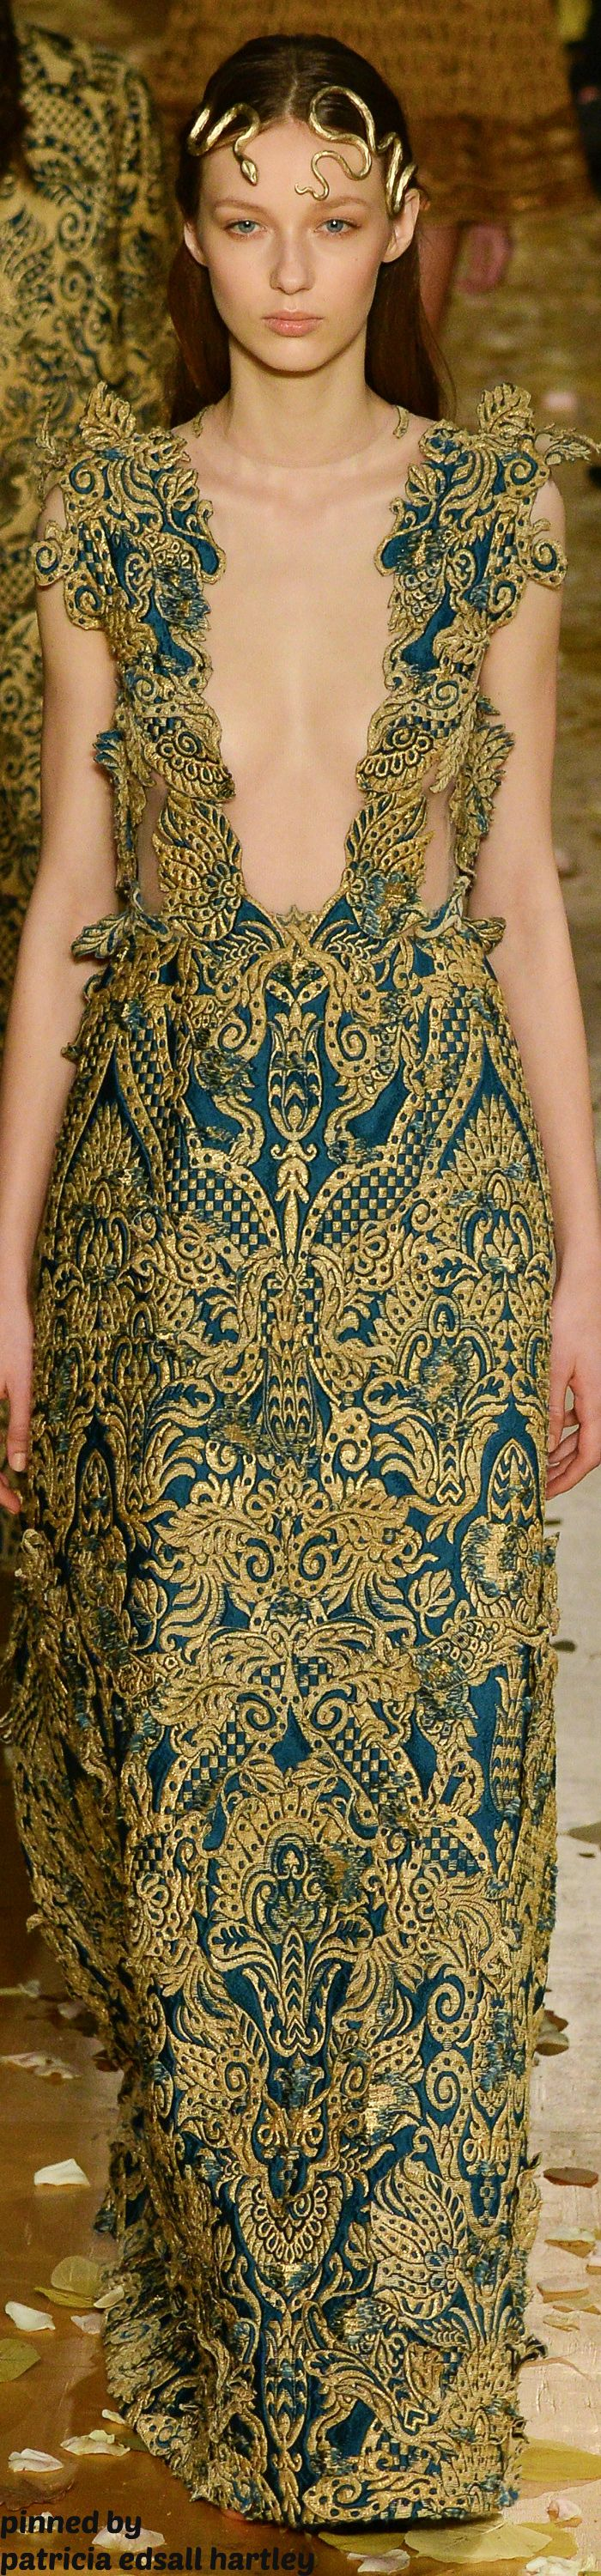 Valentino Spring 2016 Couture Fashion Show | Costumes of Beauty Wear Art